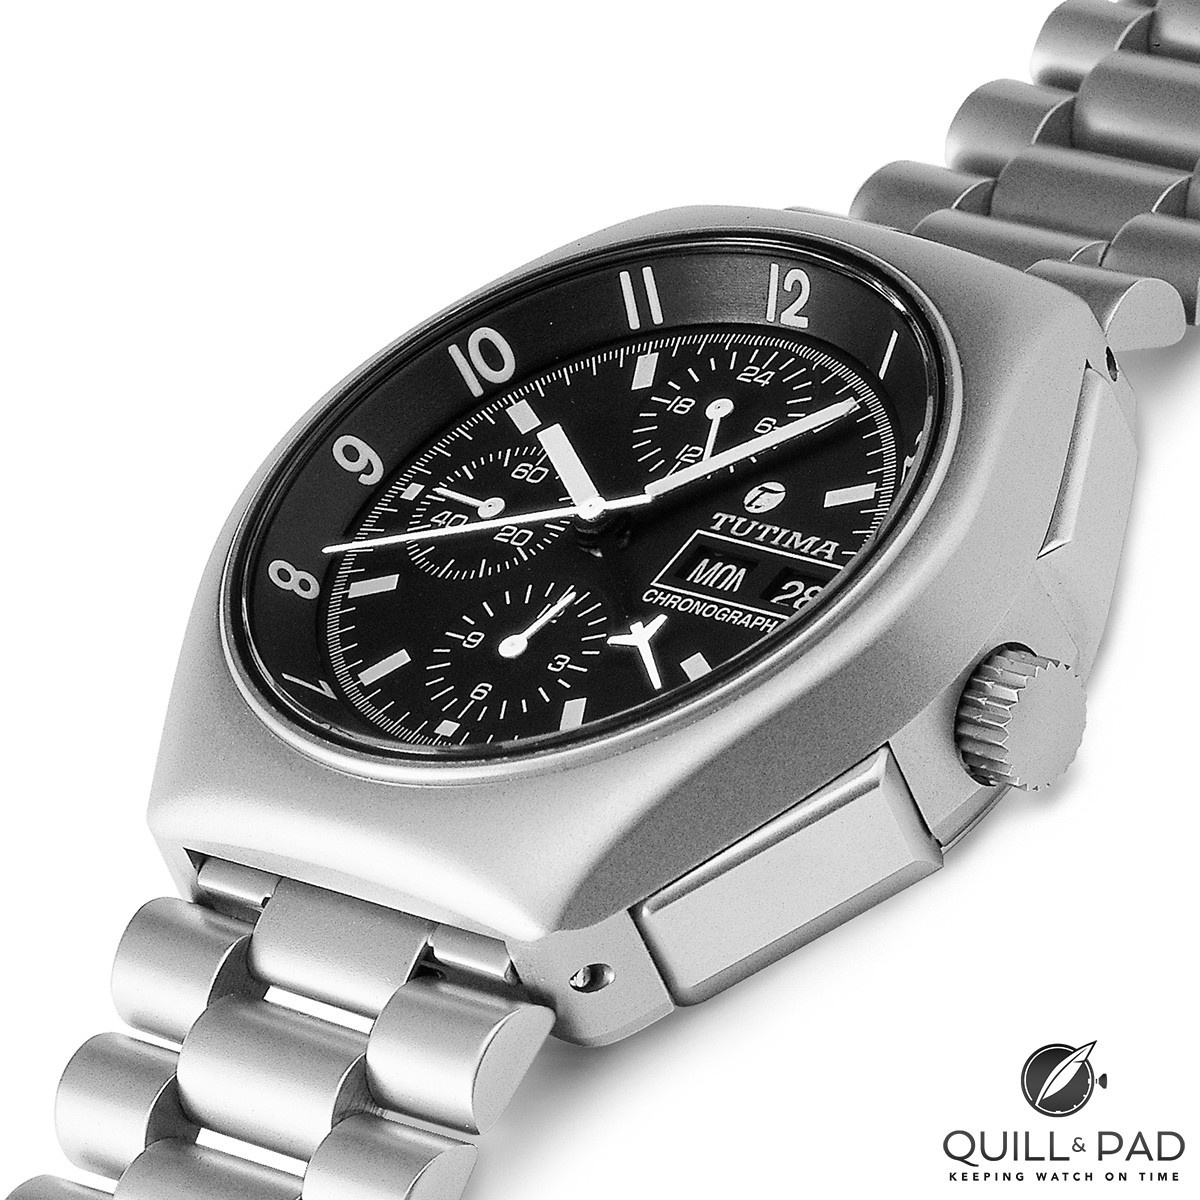 Tutima's legendary Reference 798, a military chronograph that became the official pilot's watch of NATO in 1984